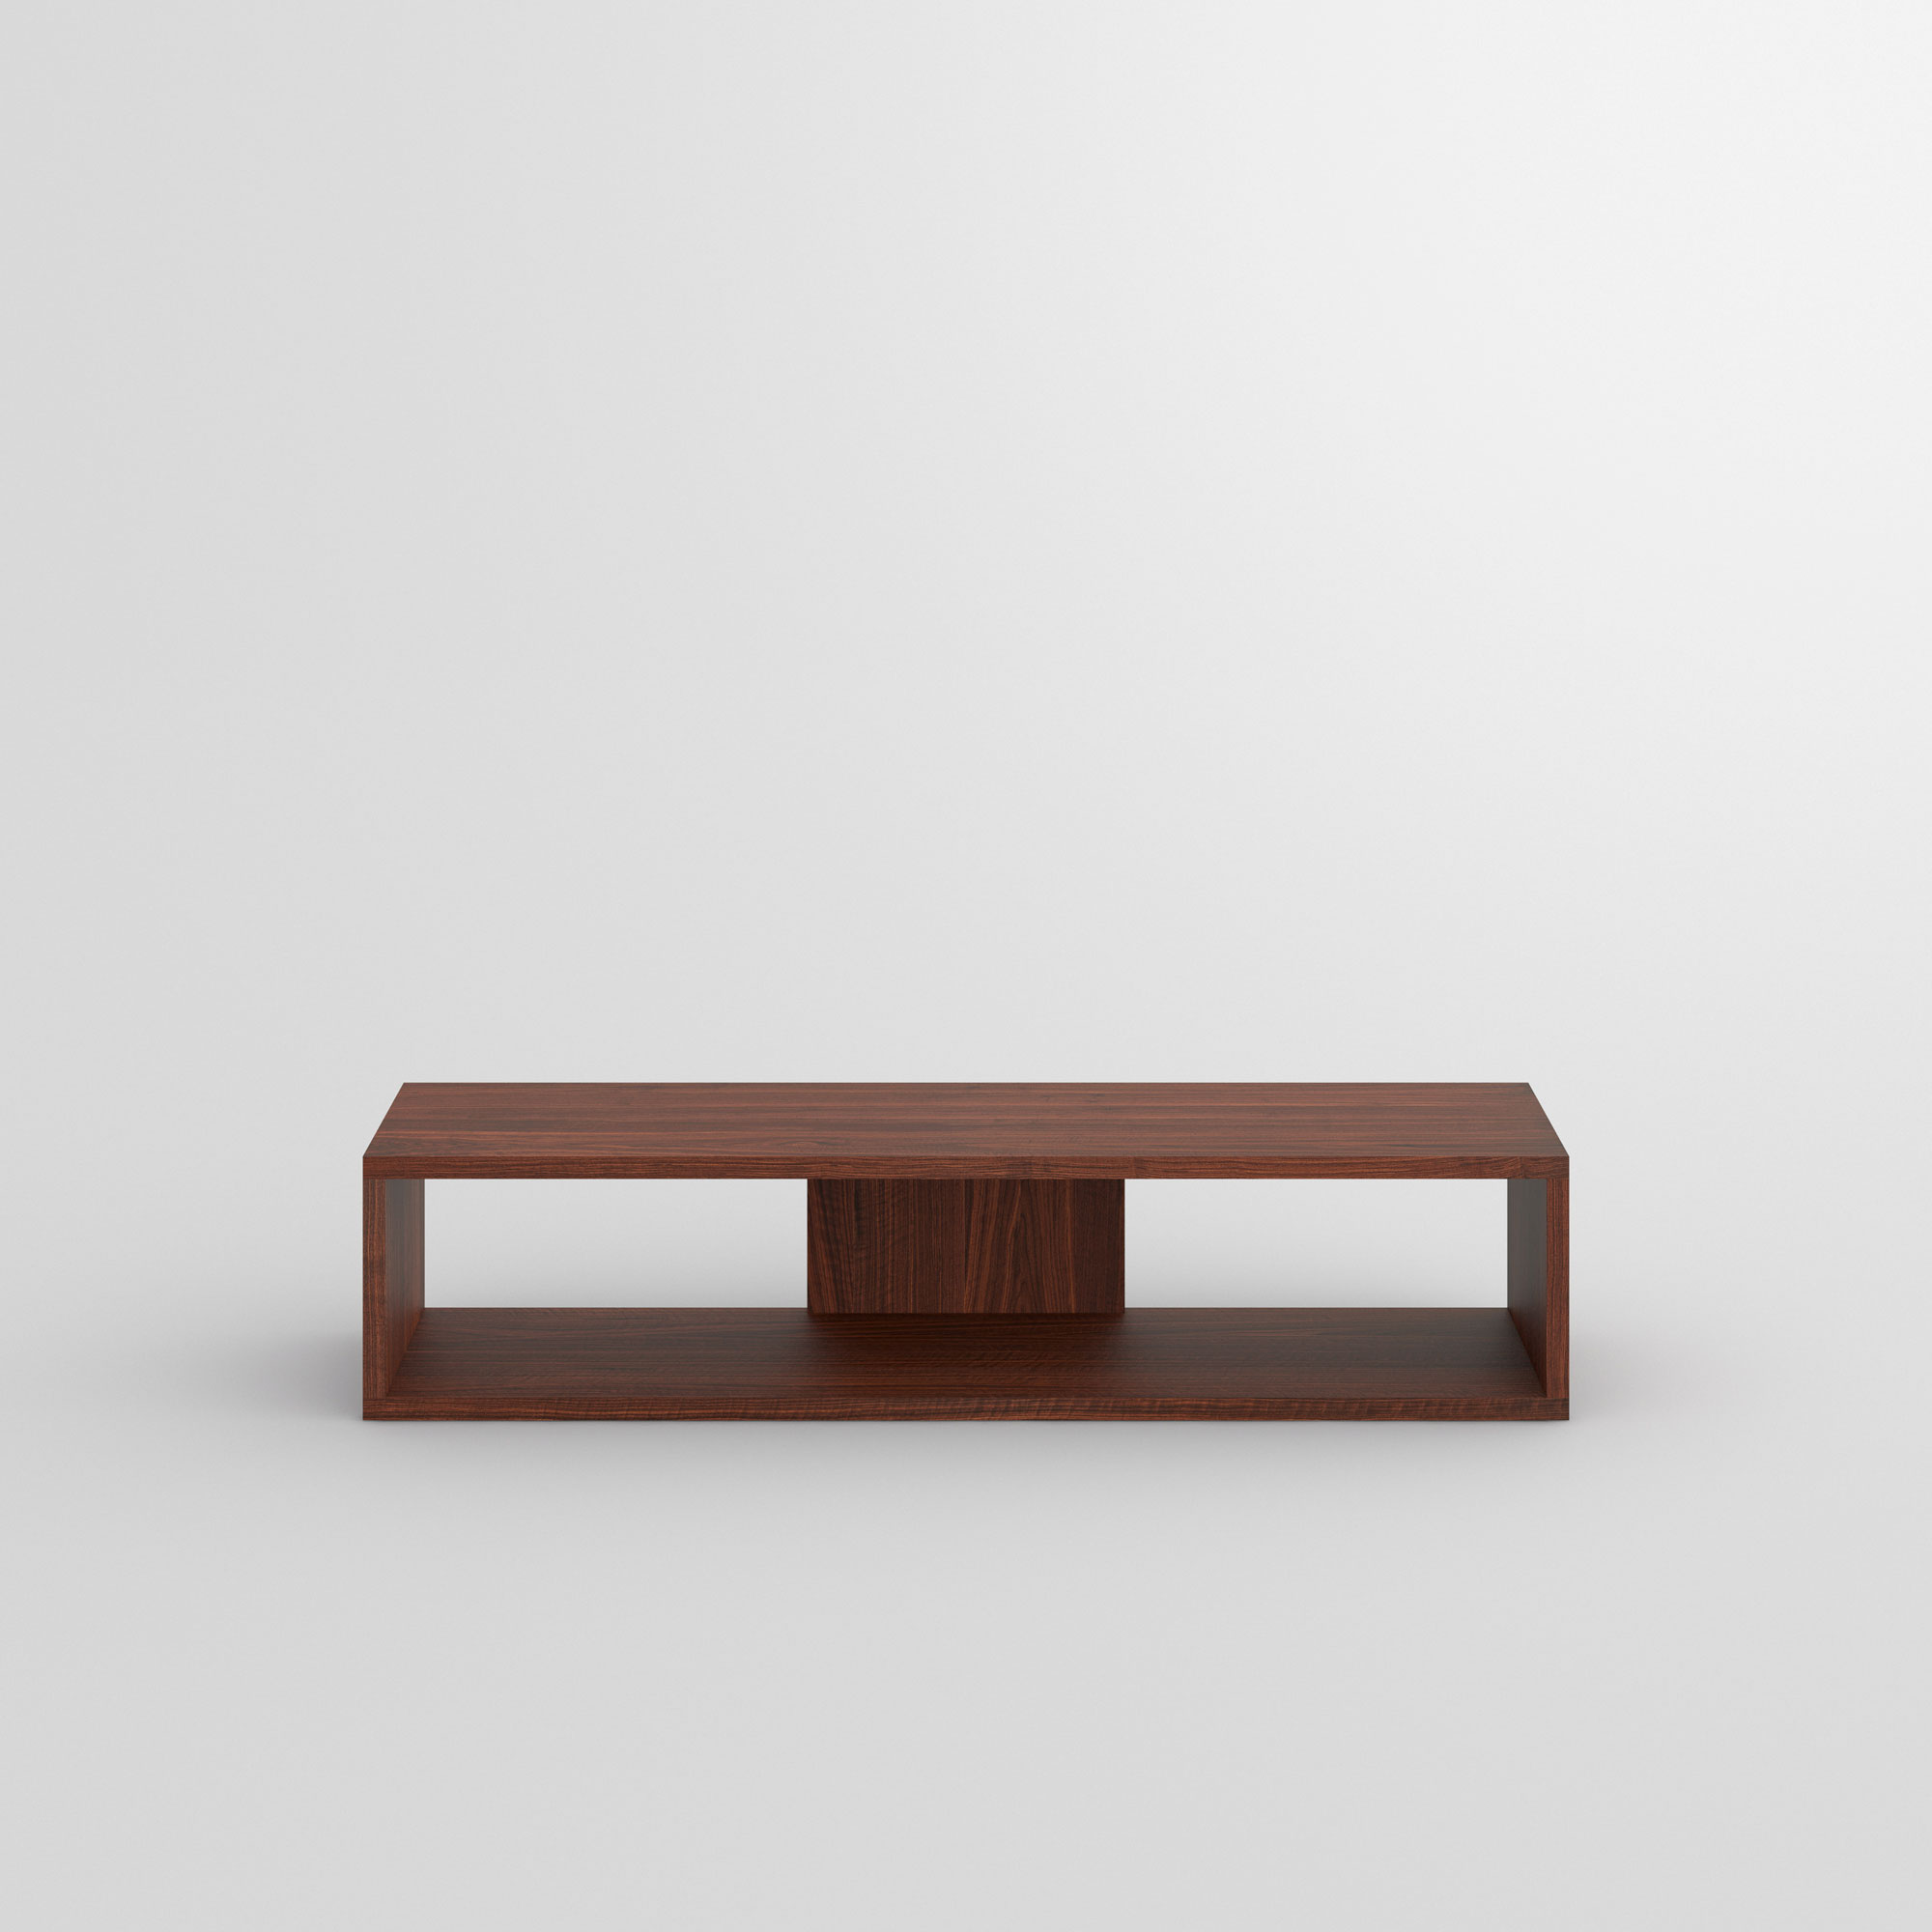 TV Shelf MENA TV cam3 custom made in solid wood by vitamin design